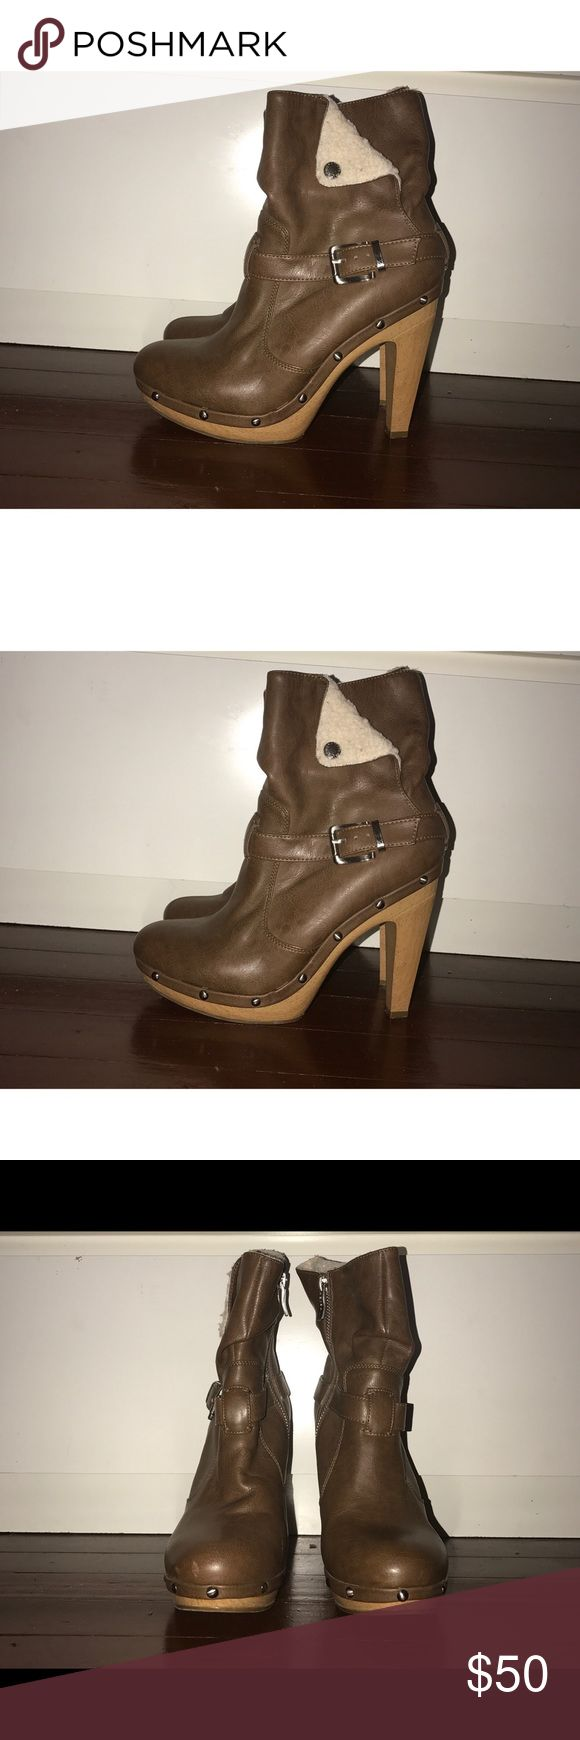 Ankle Boots -Studded  -Faux fur  -Brown buckle ankle boots BCBGeneration Shoes Ankle Boots & Booties